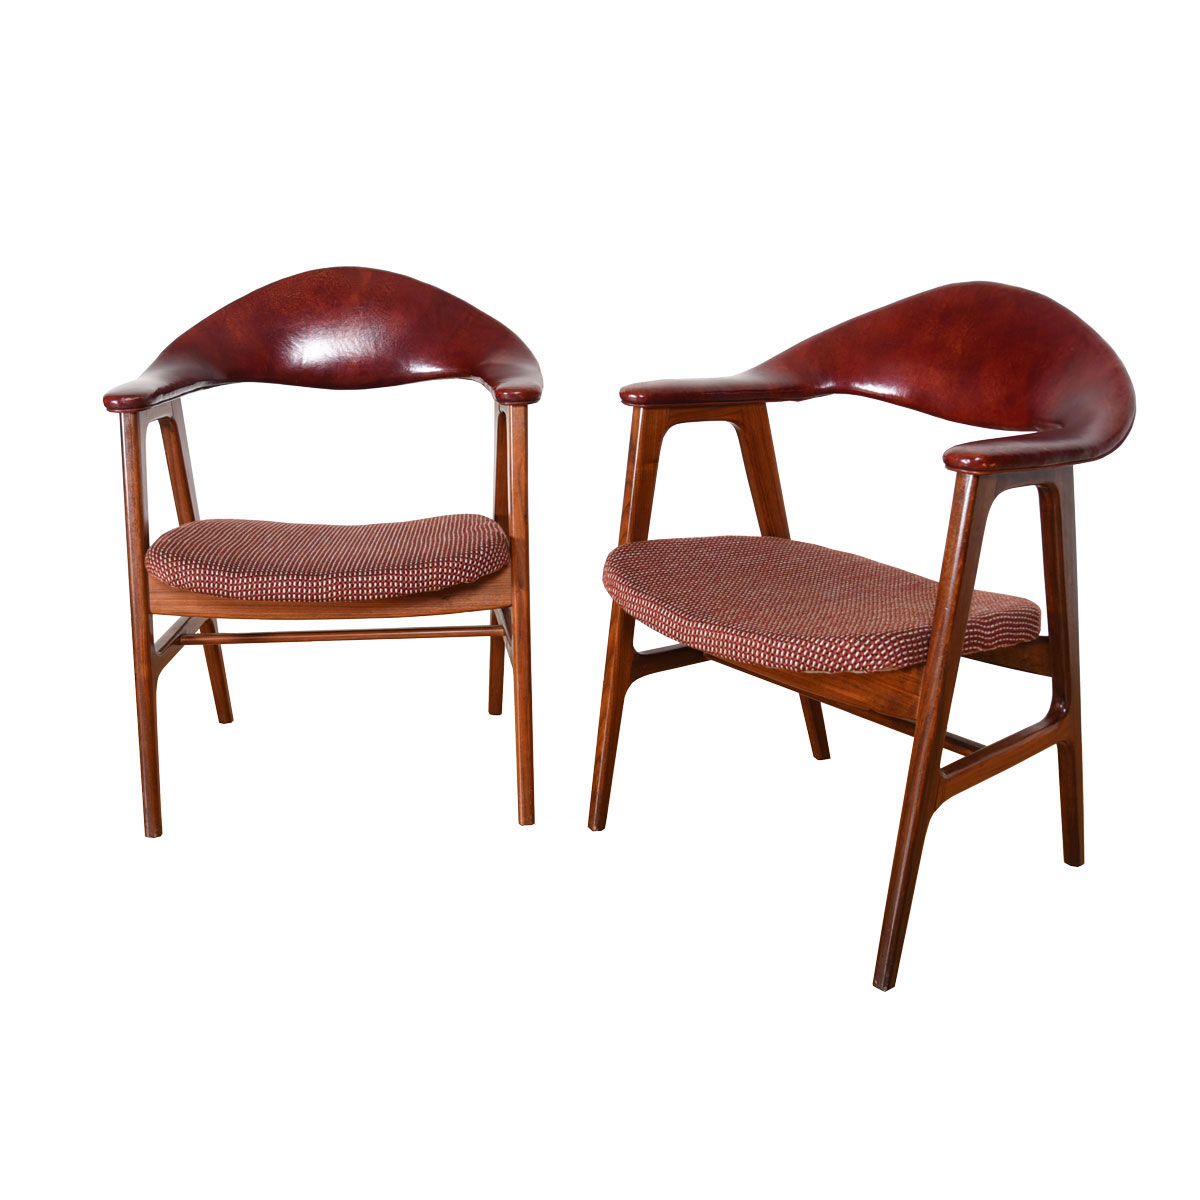 Leather Pair of Danish Modern Accent Chairs with Arms